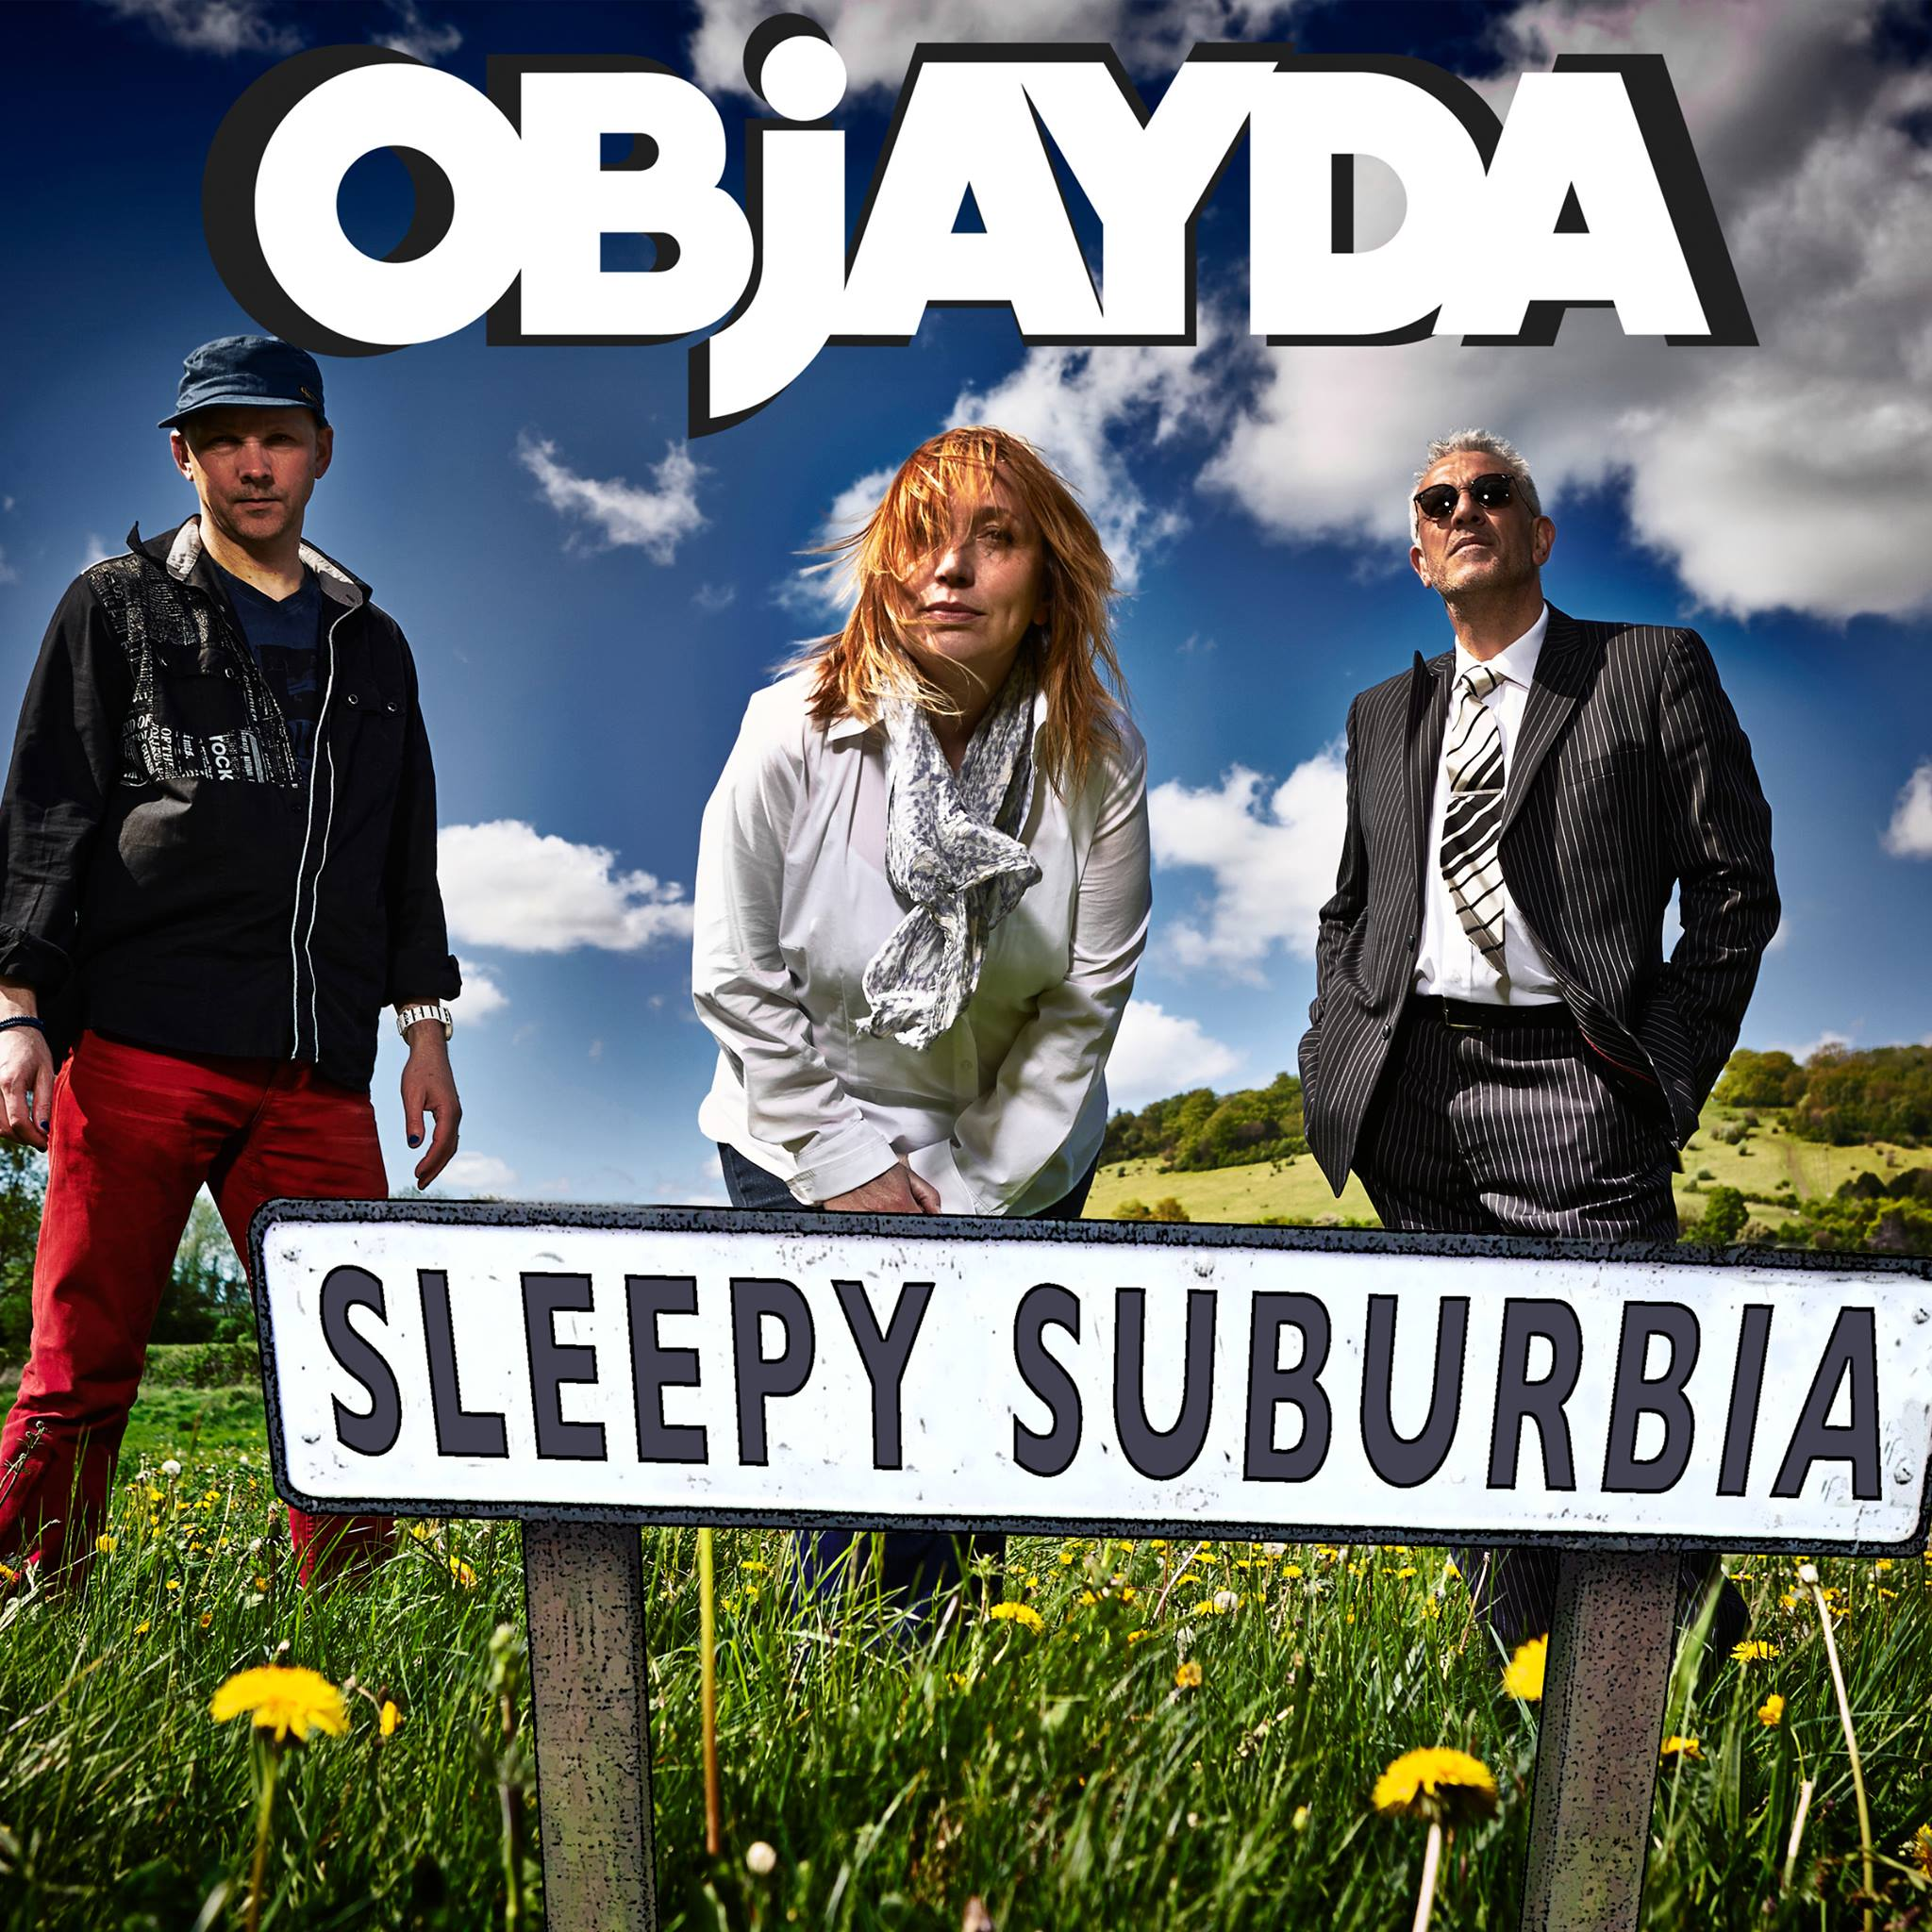 ObjayDa-Sleepy Surburbia